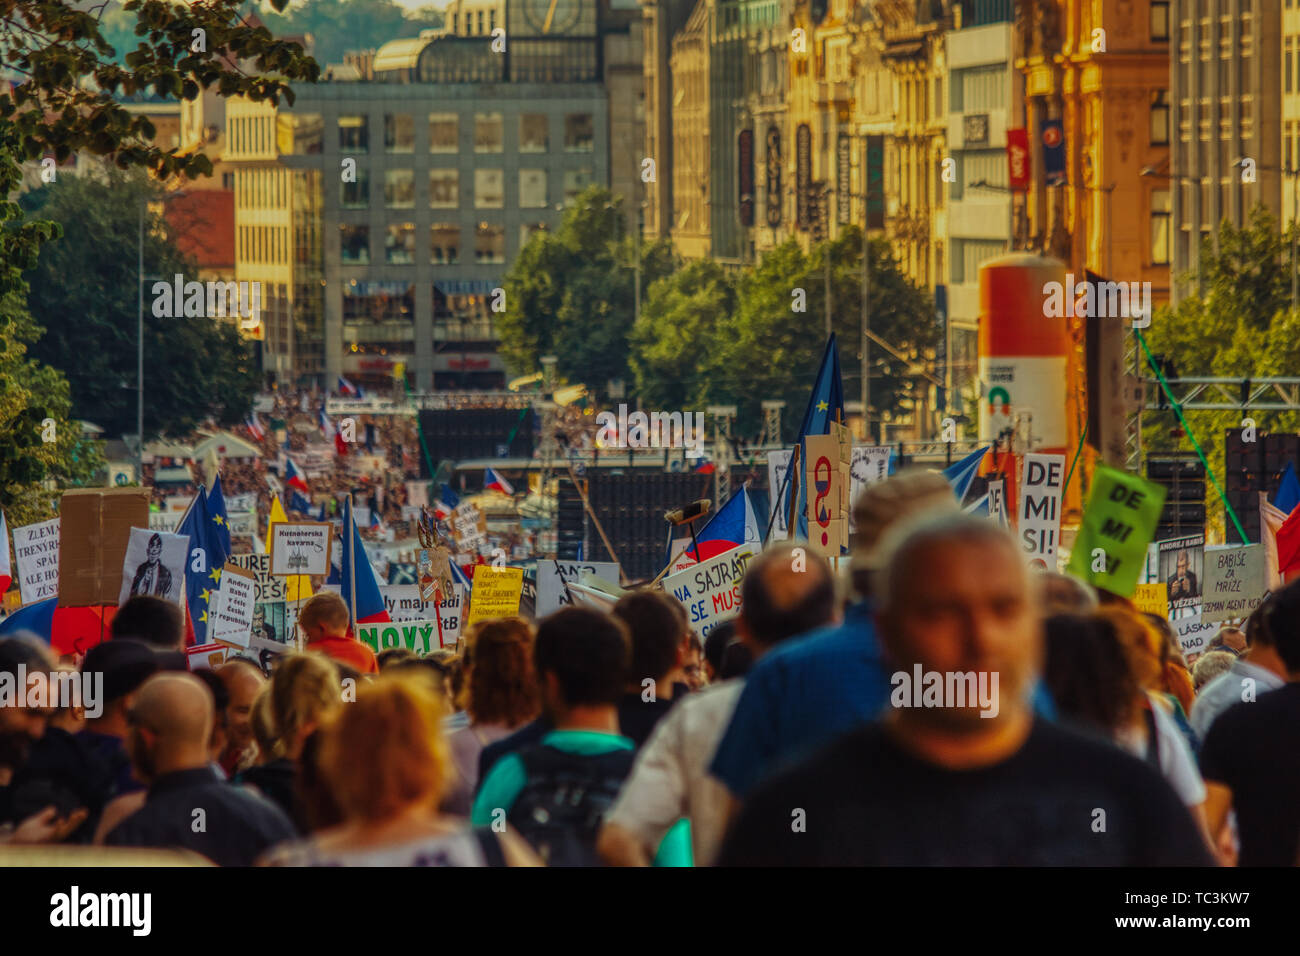 Prague, 4 of June of 2019 - Protest against Andrej Babis in Wenceslas Square - Stock Image